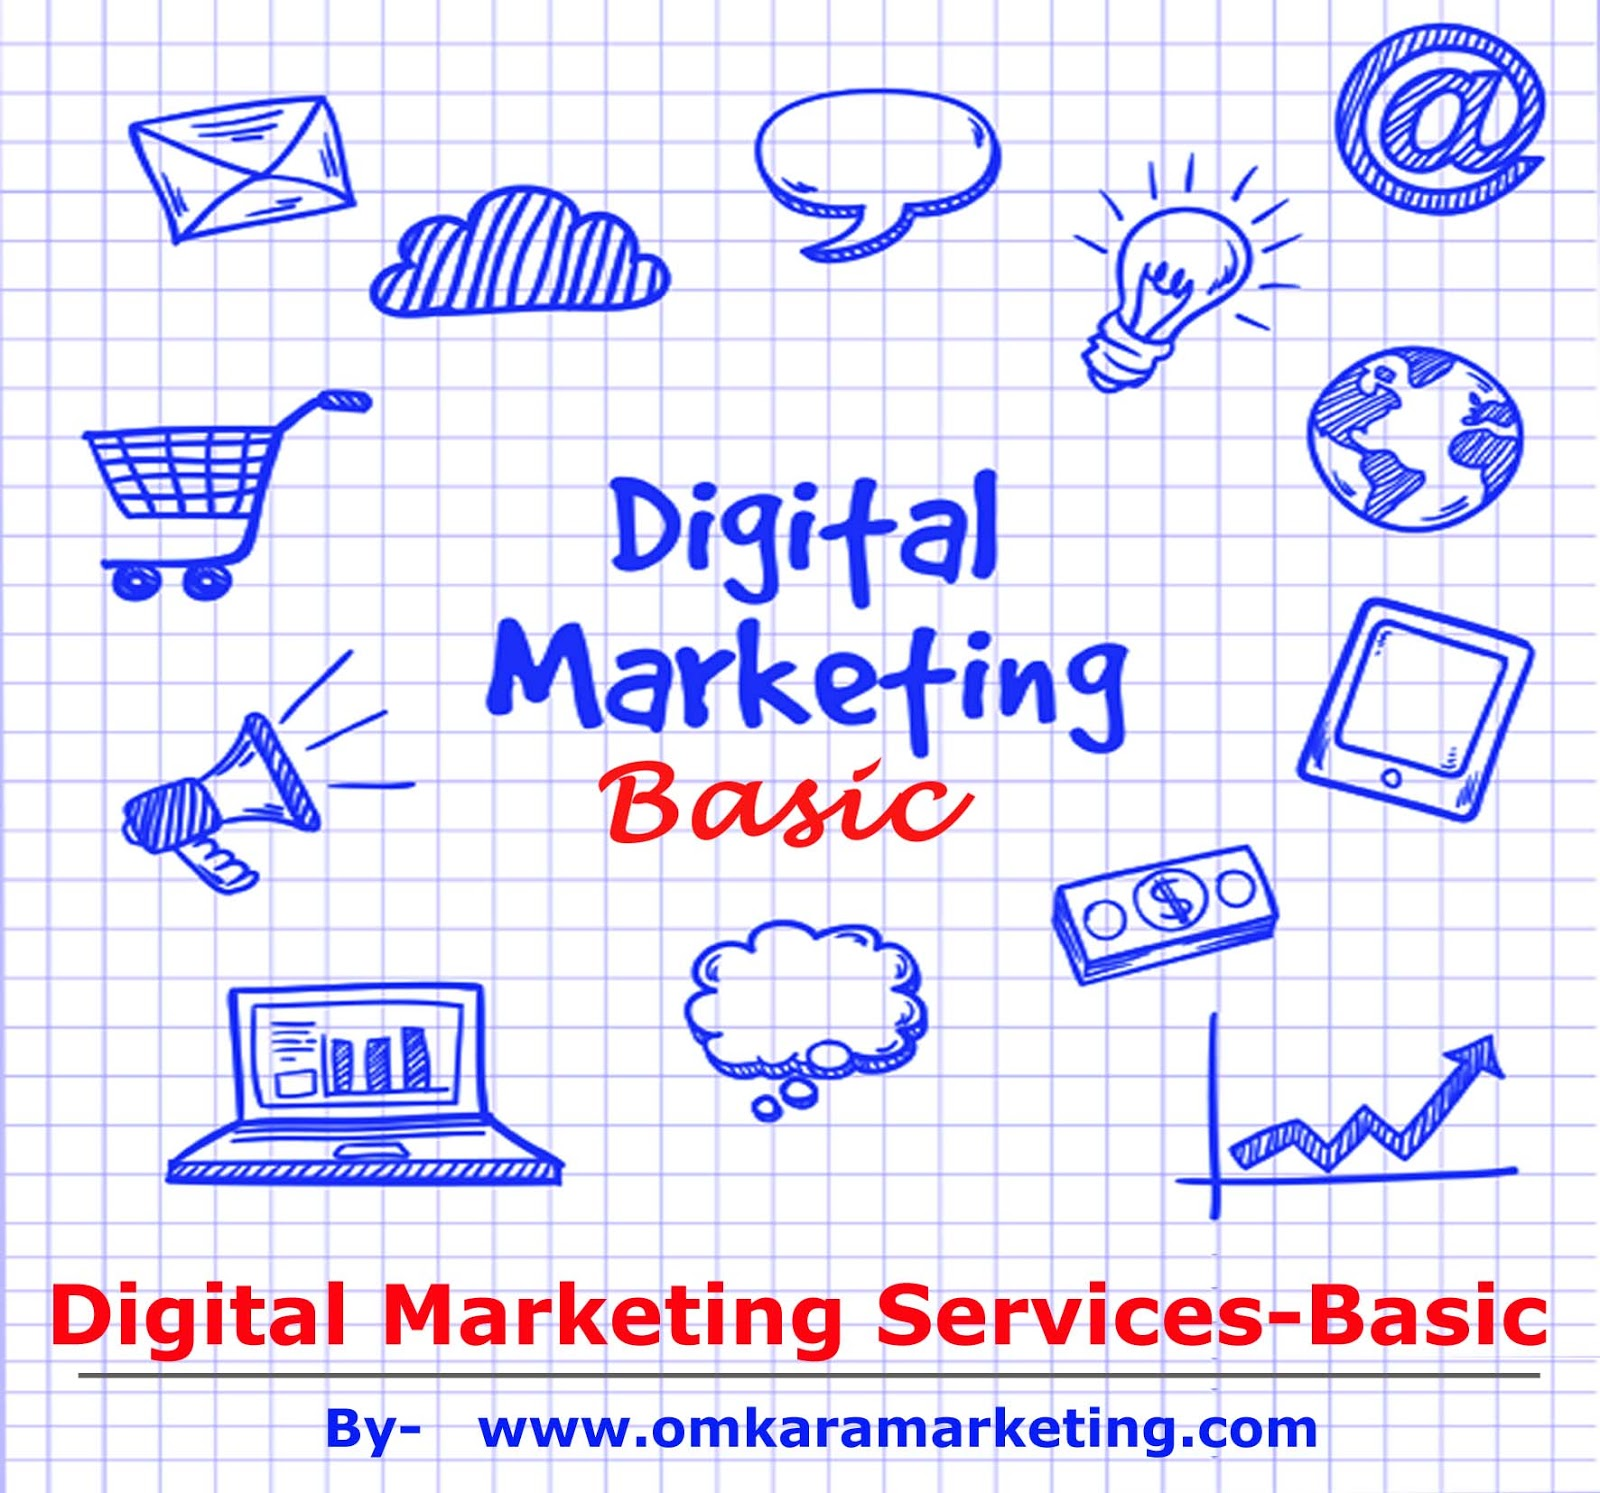 services marketing basics Learn how to develop, implement, and measure a winning marketing strategy using today's tools and platforms our marketing courses help you master traditional marketing skills and the latest.